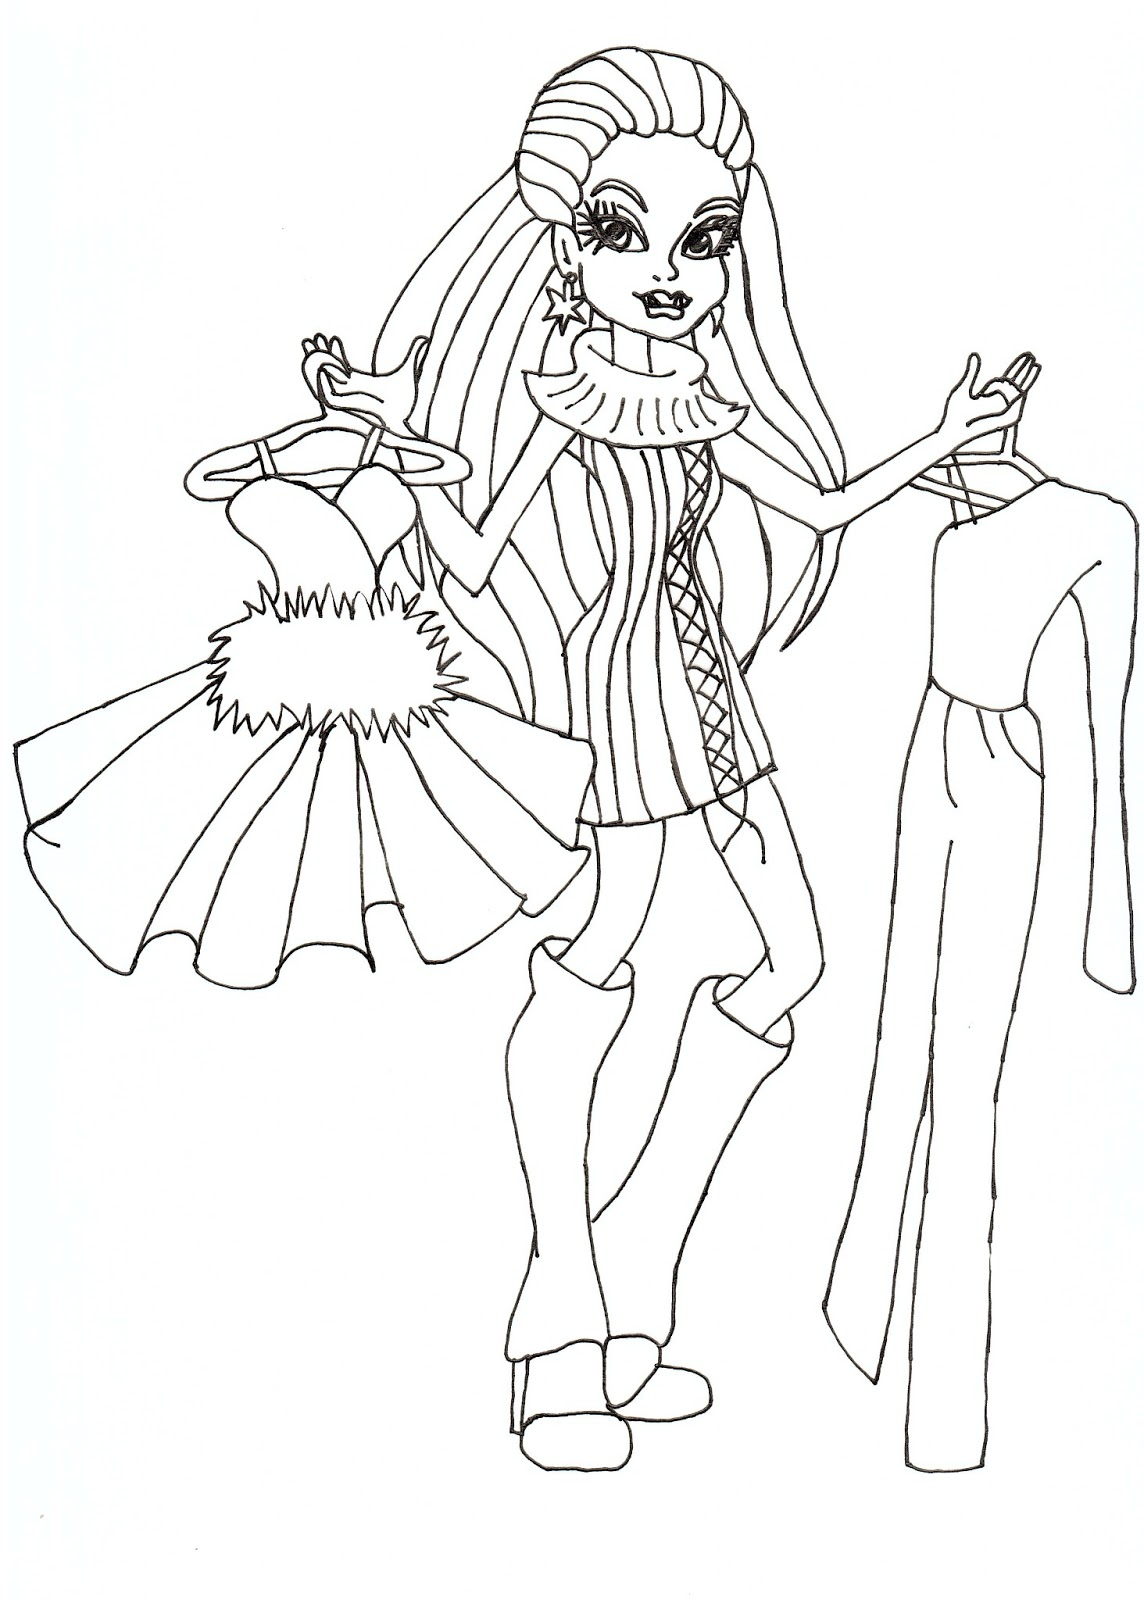 Free Printable Monster High Coloring Pages: Abbey I love